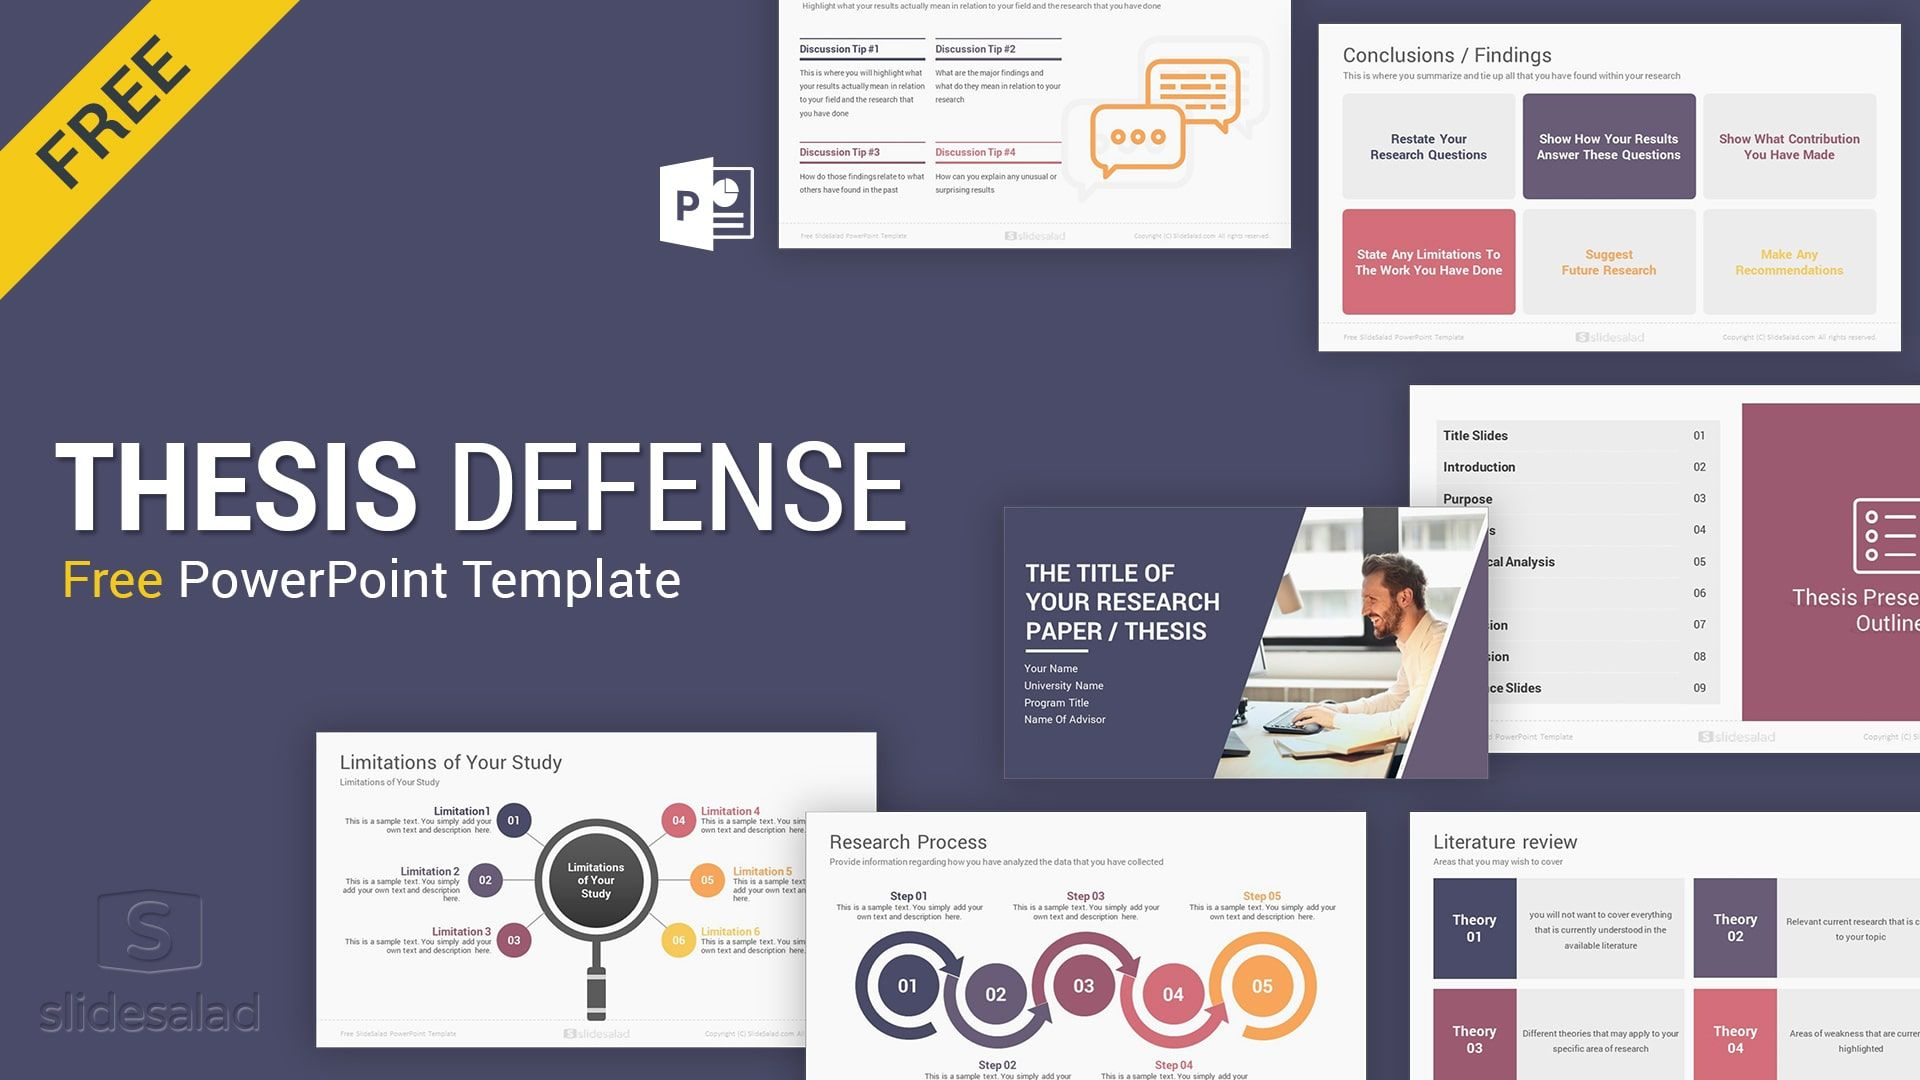 Master S Thesis Defense Free Powerpoint Template Design Slidesalad Powerpoint Templates Powerpoint Design Templates Presentation Template Free